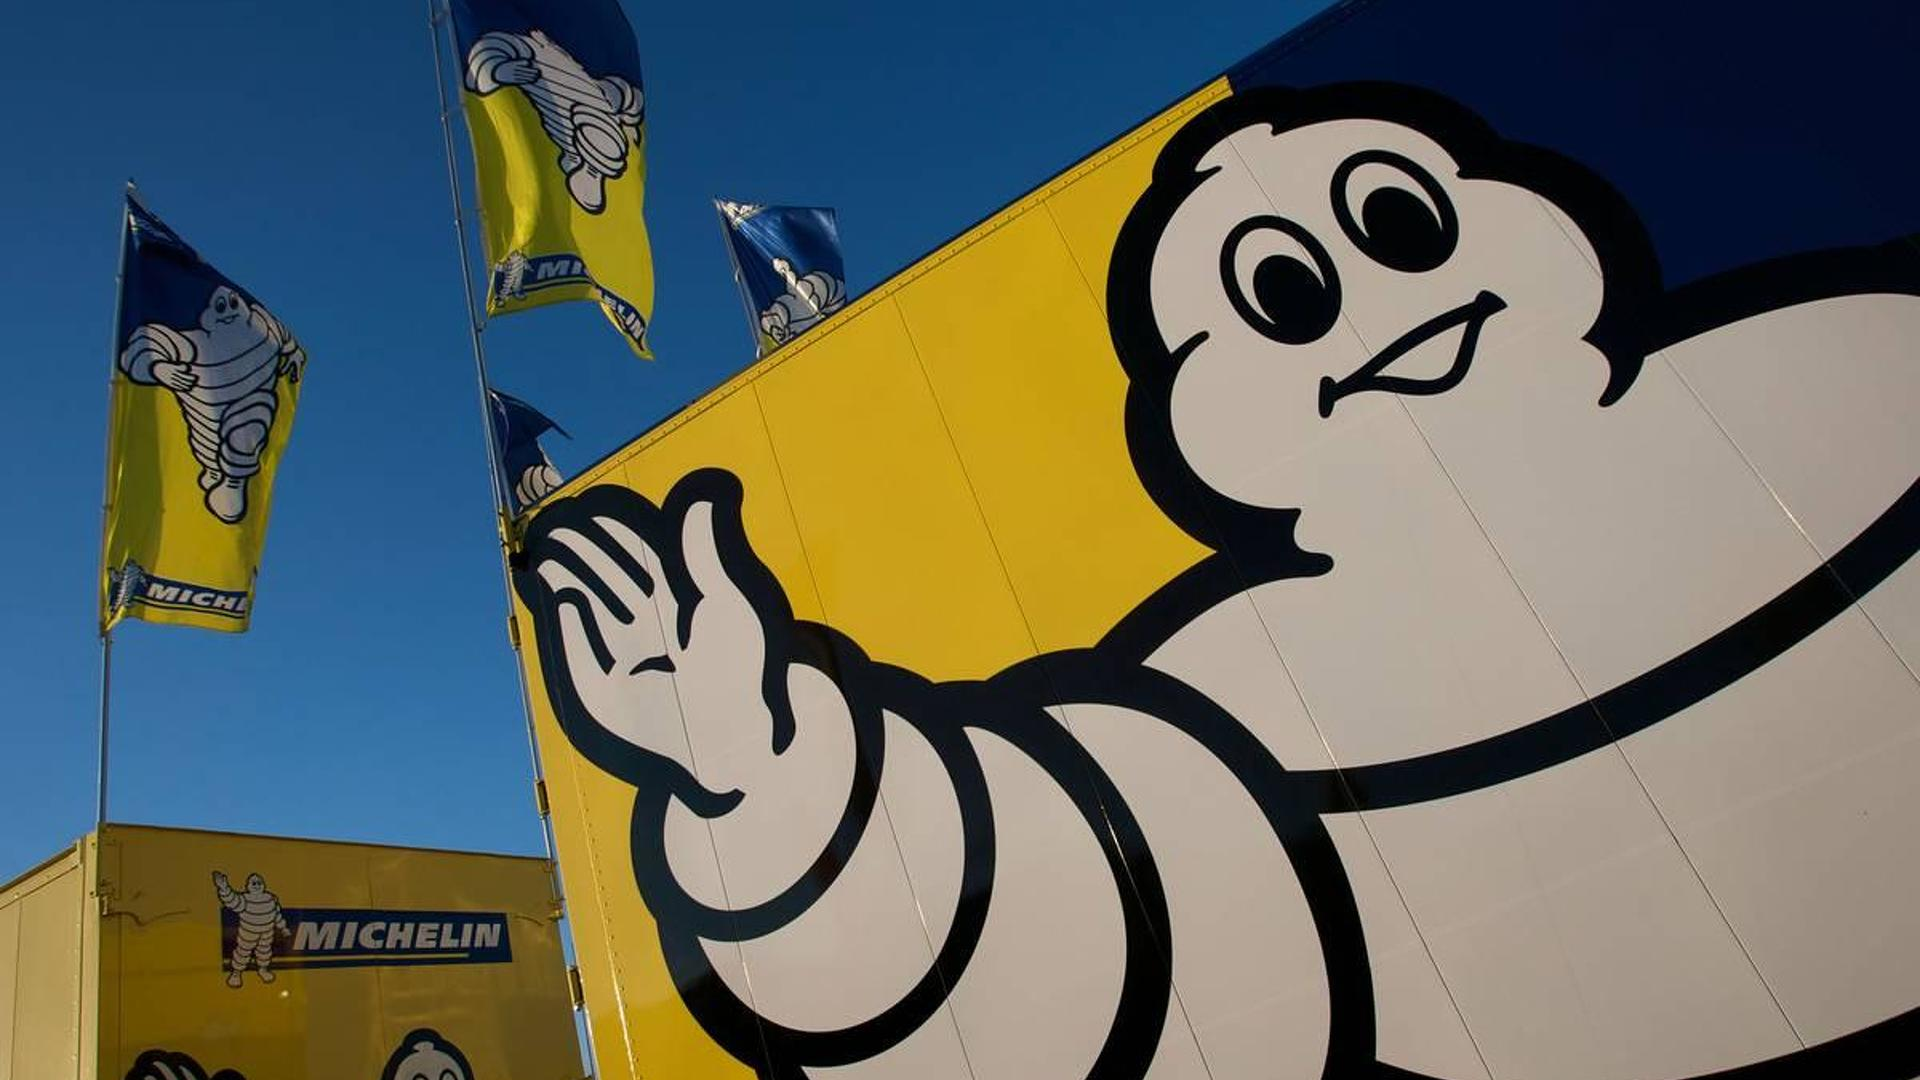 Michelin did not apply to be 2011 supplier - Shorrock